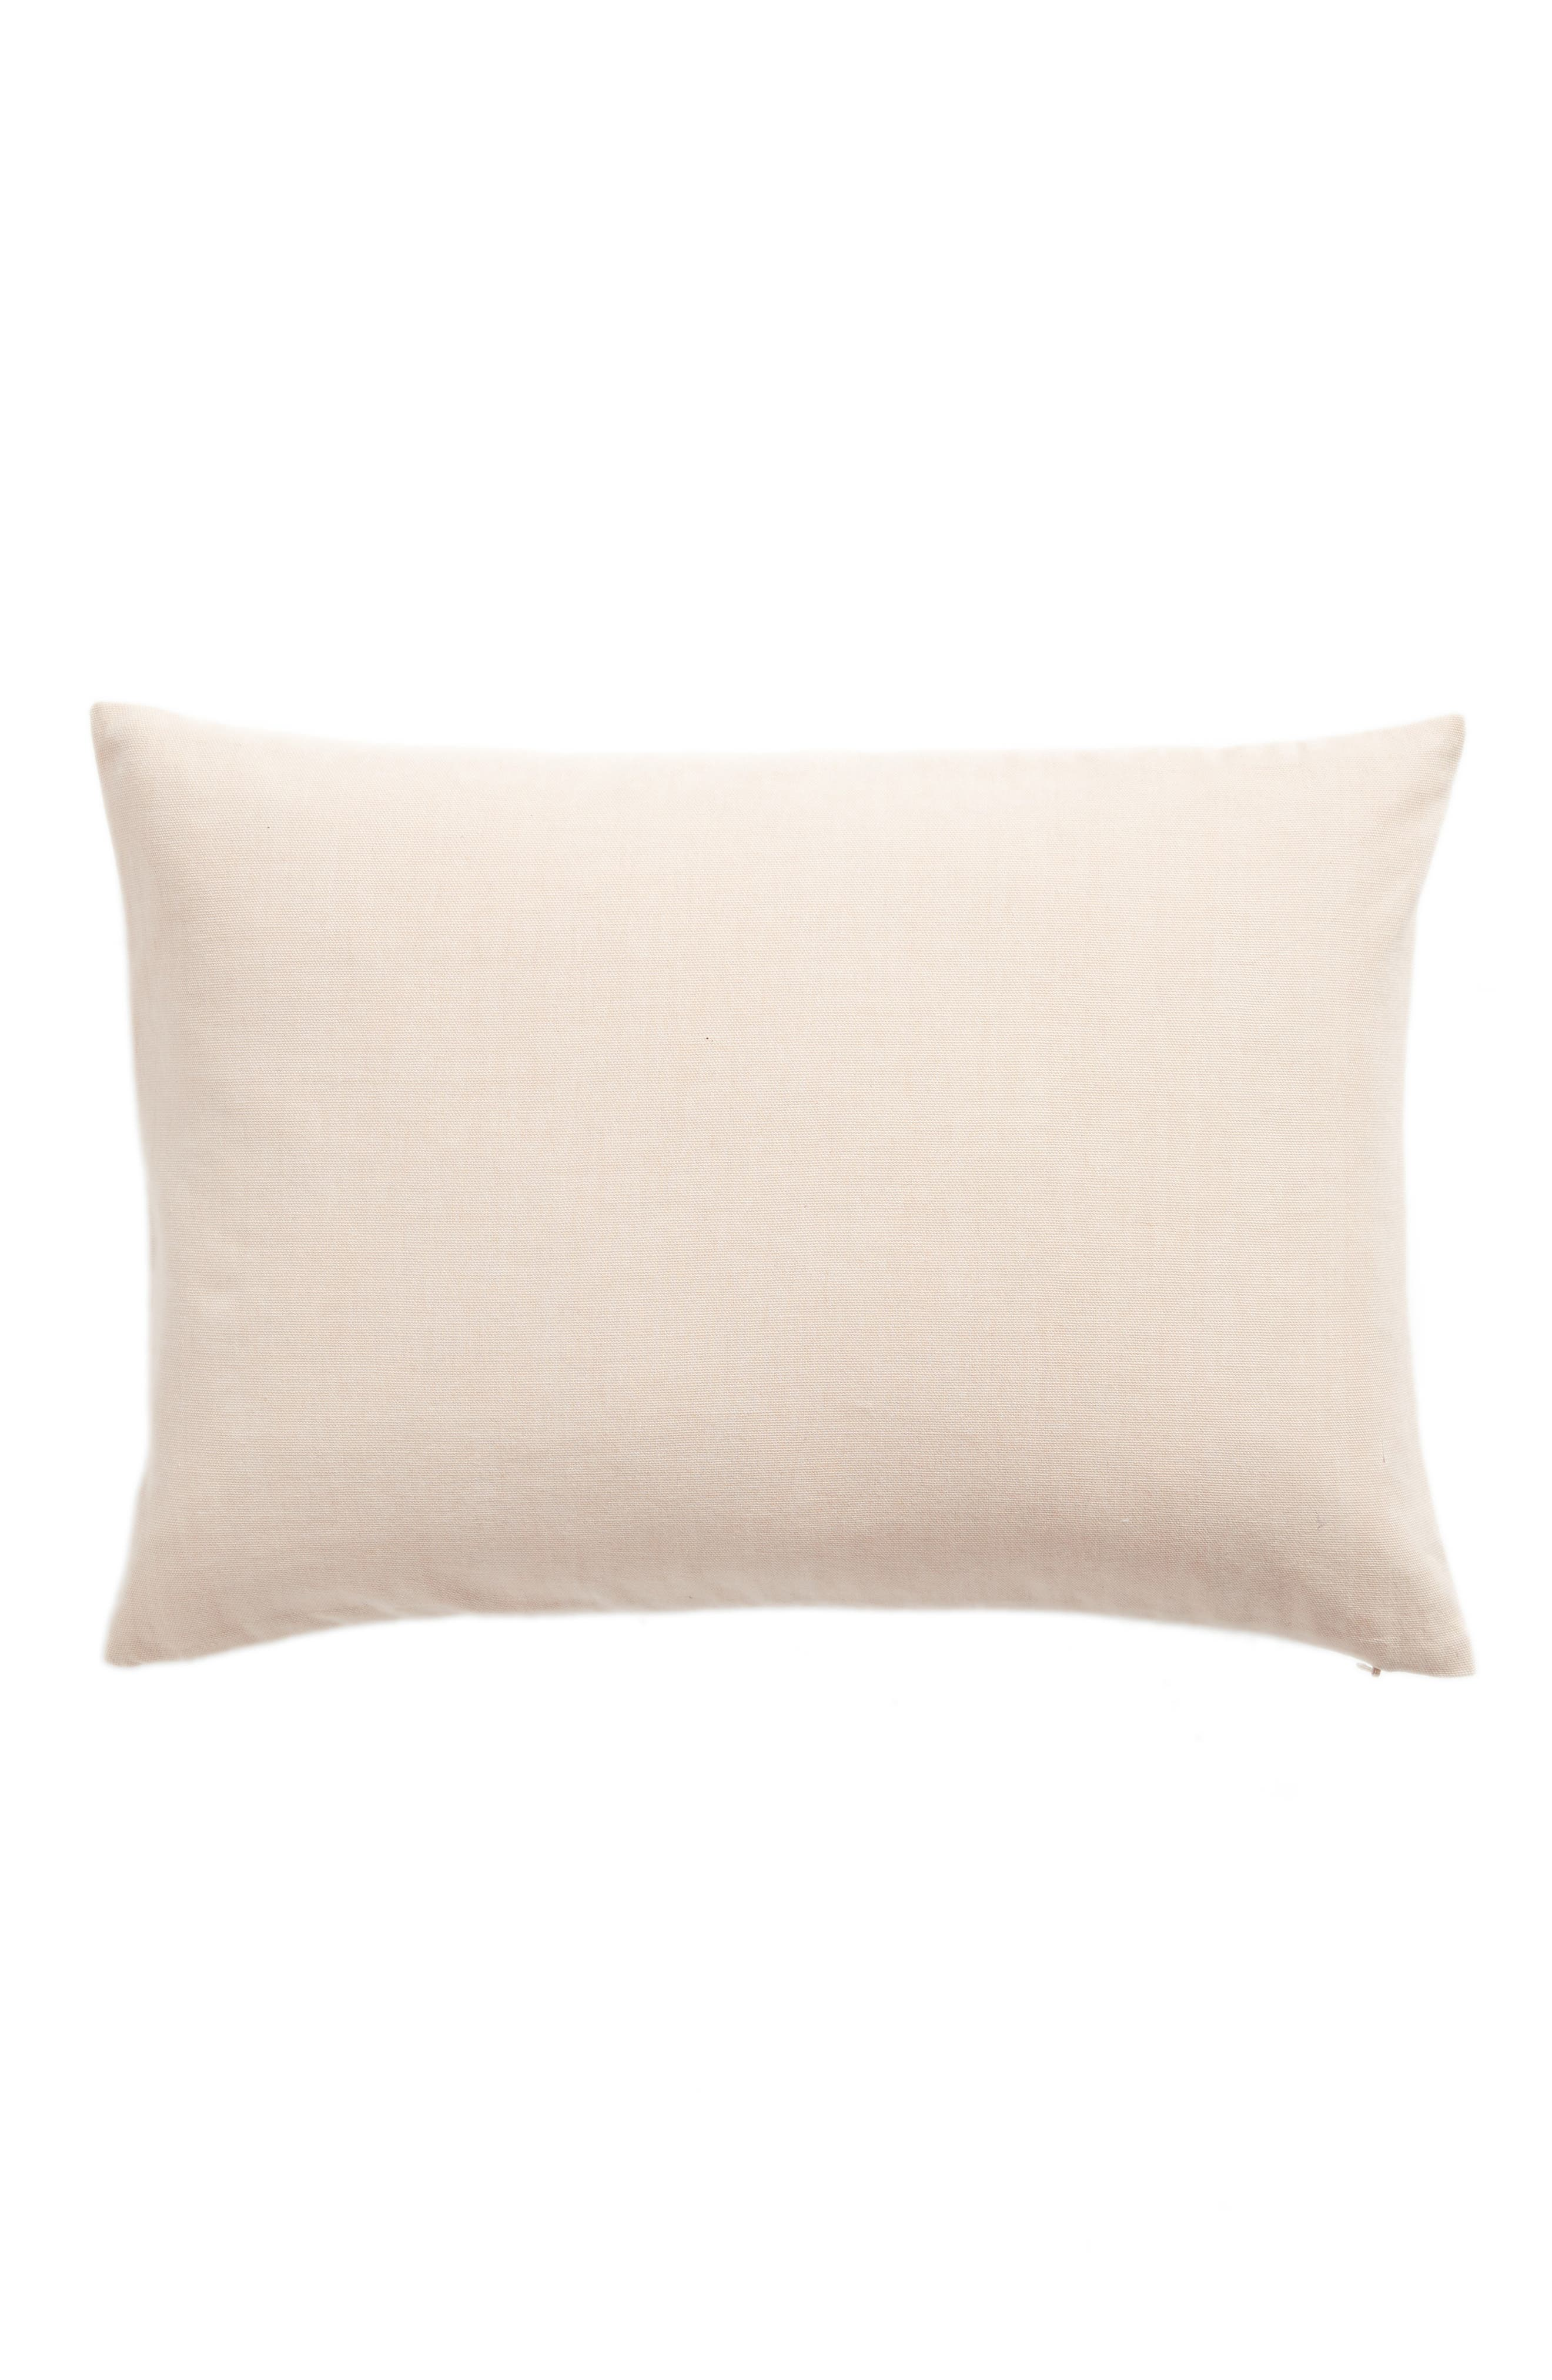 I Love You More Accent Pillow,                             Alternate thumbnail 2, color,                             Ivory